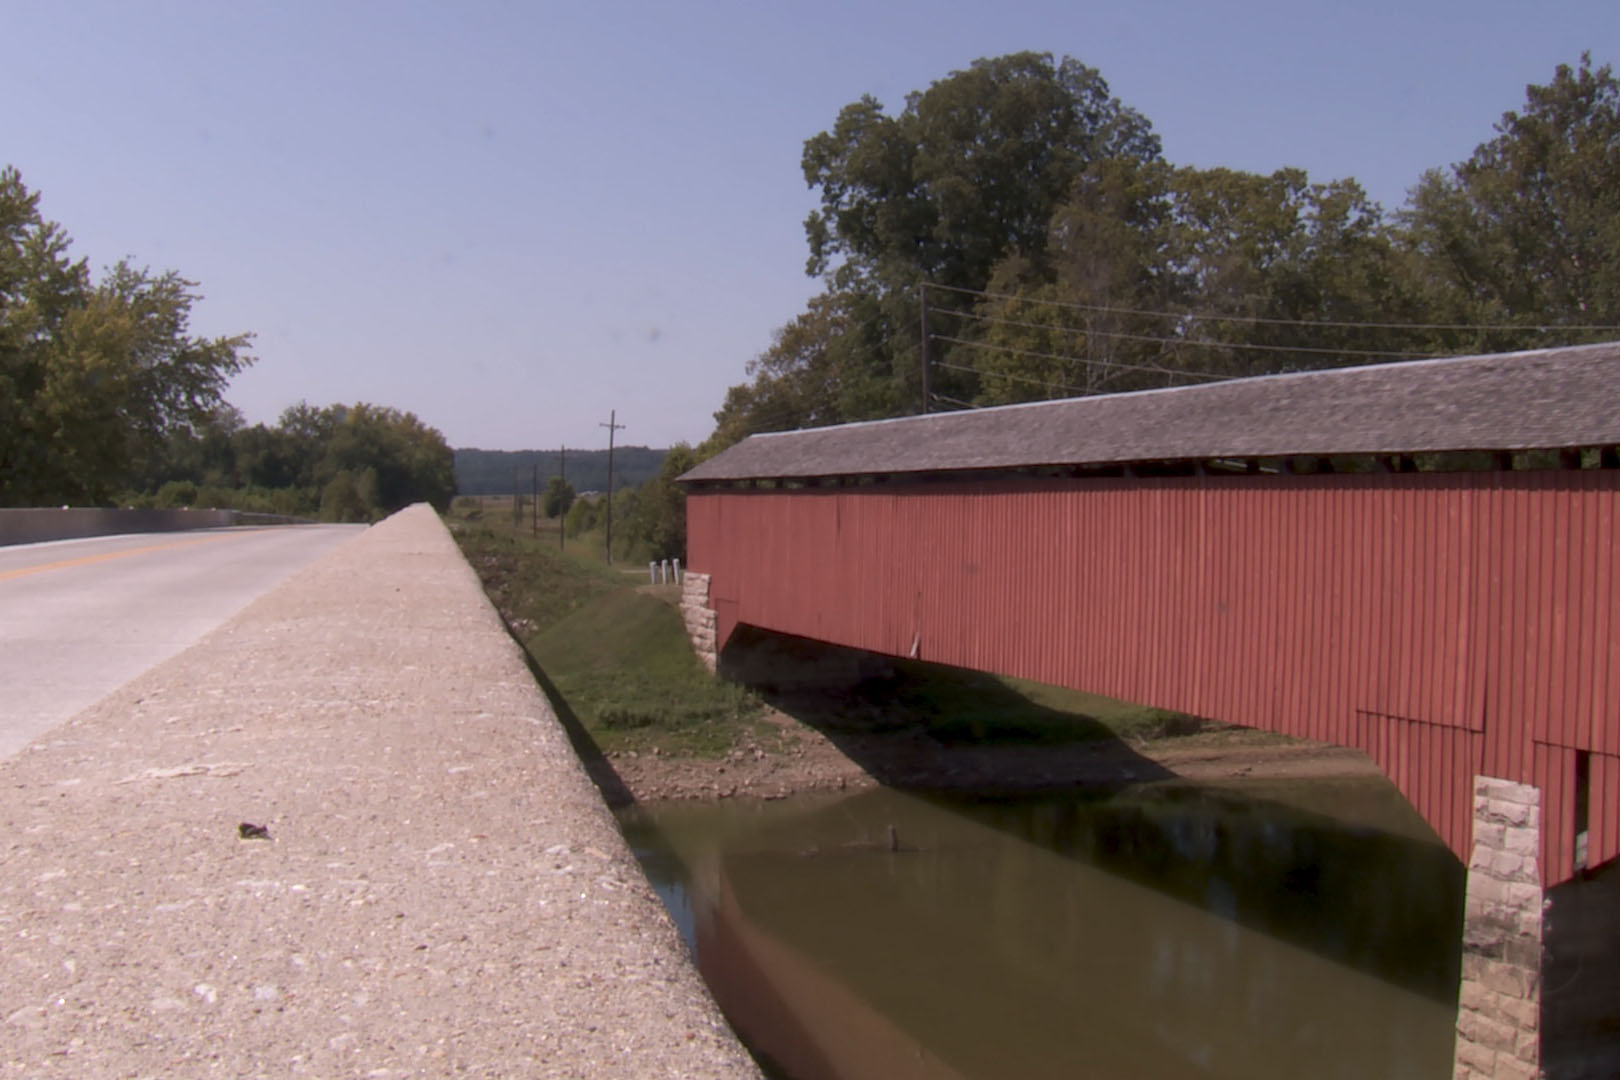 Jackson County Medora Covered Bridge runs parallel with St. Road 235 and crosses over The East Fork White River